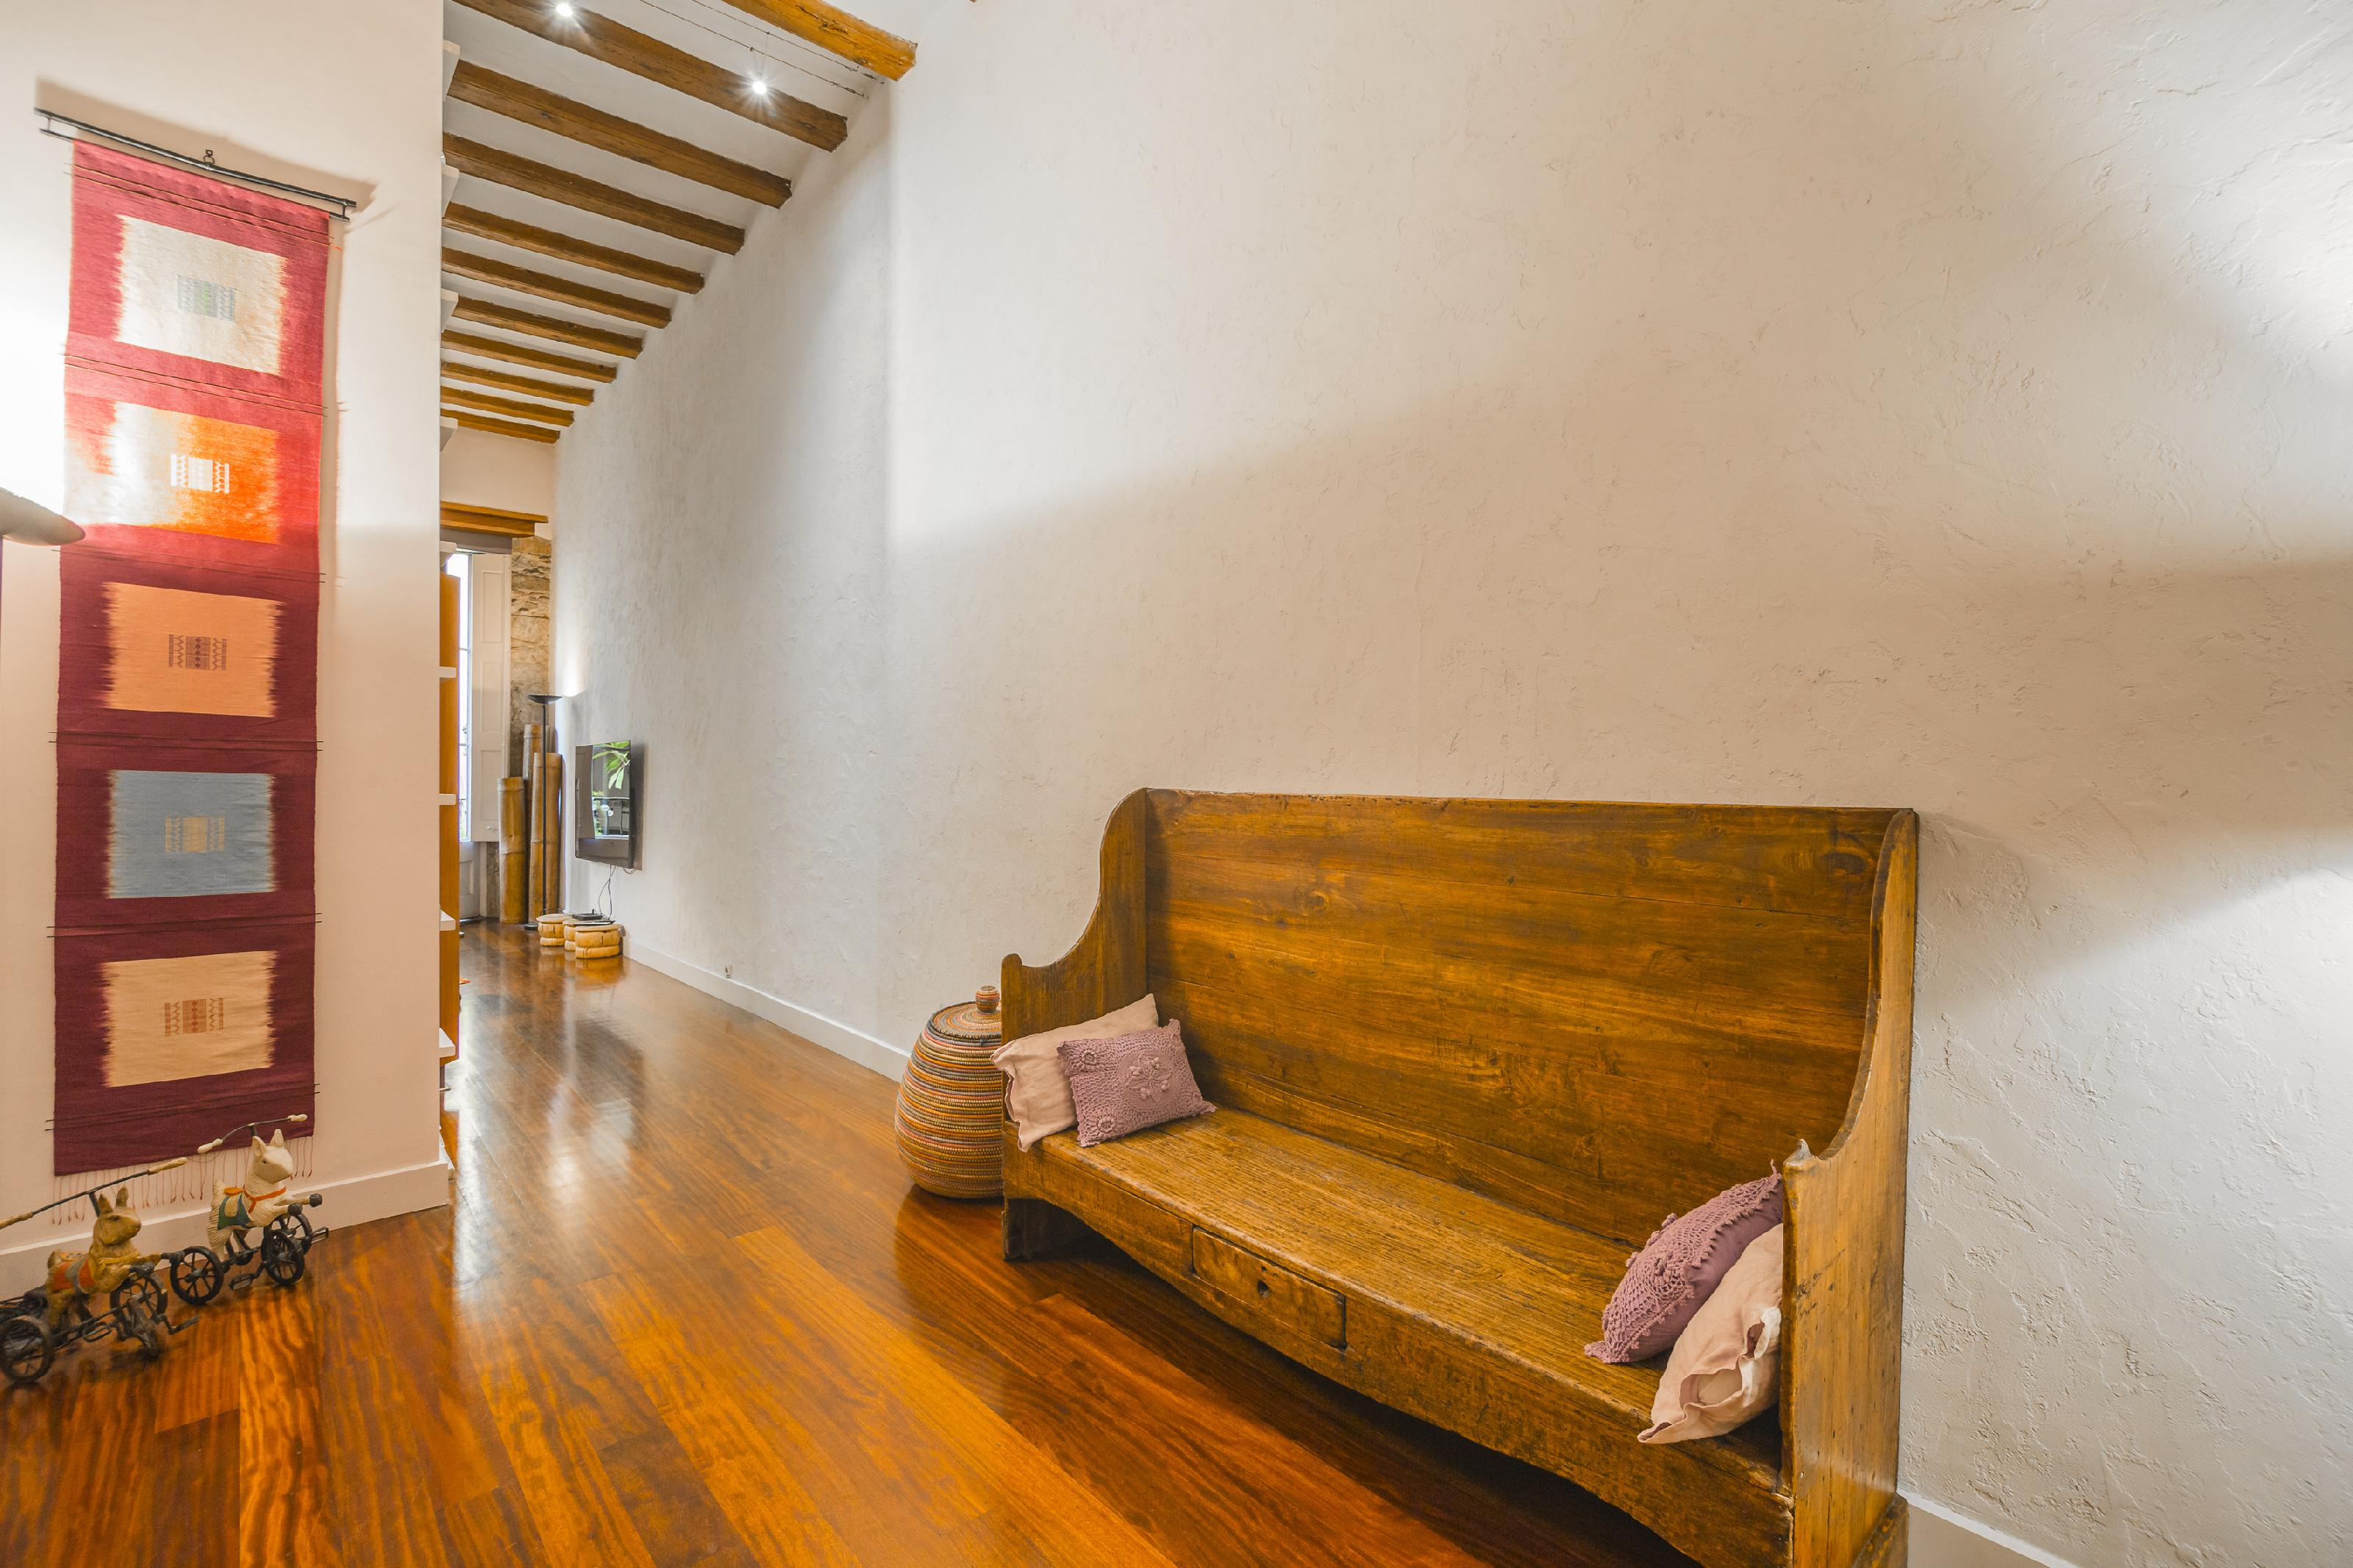 241111 Flat for sale in Ciutat Vella, Barri Gótic 8